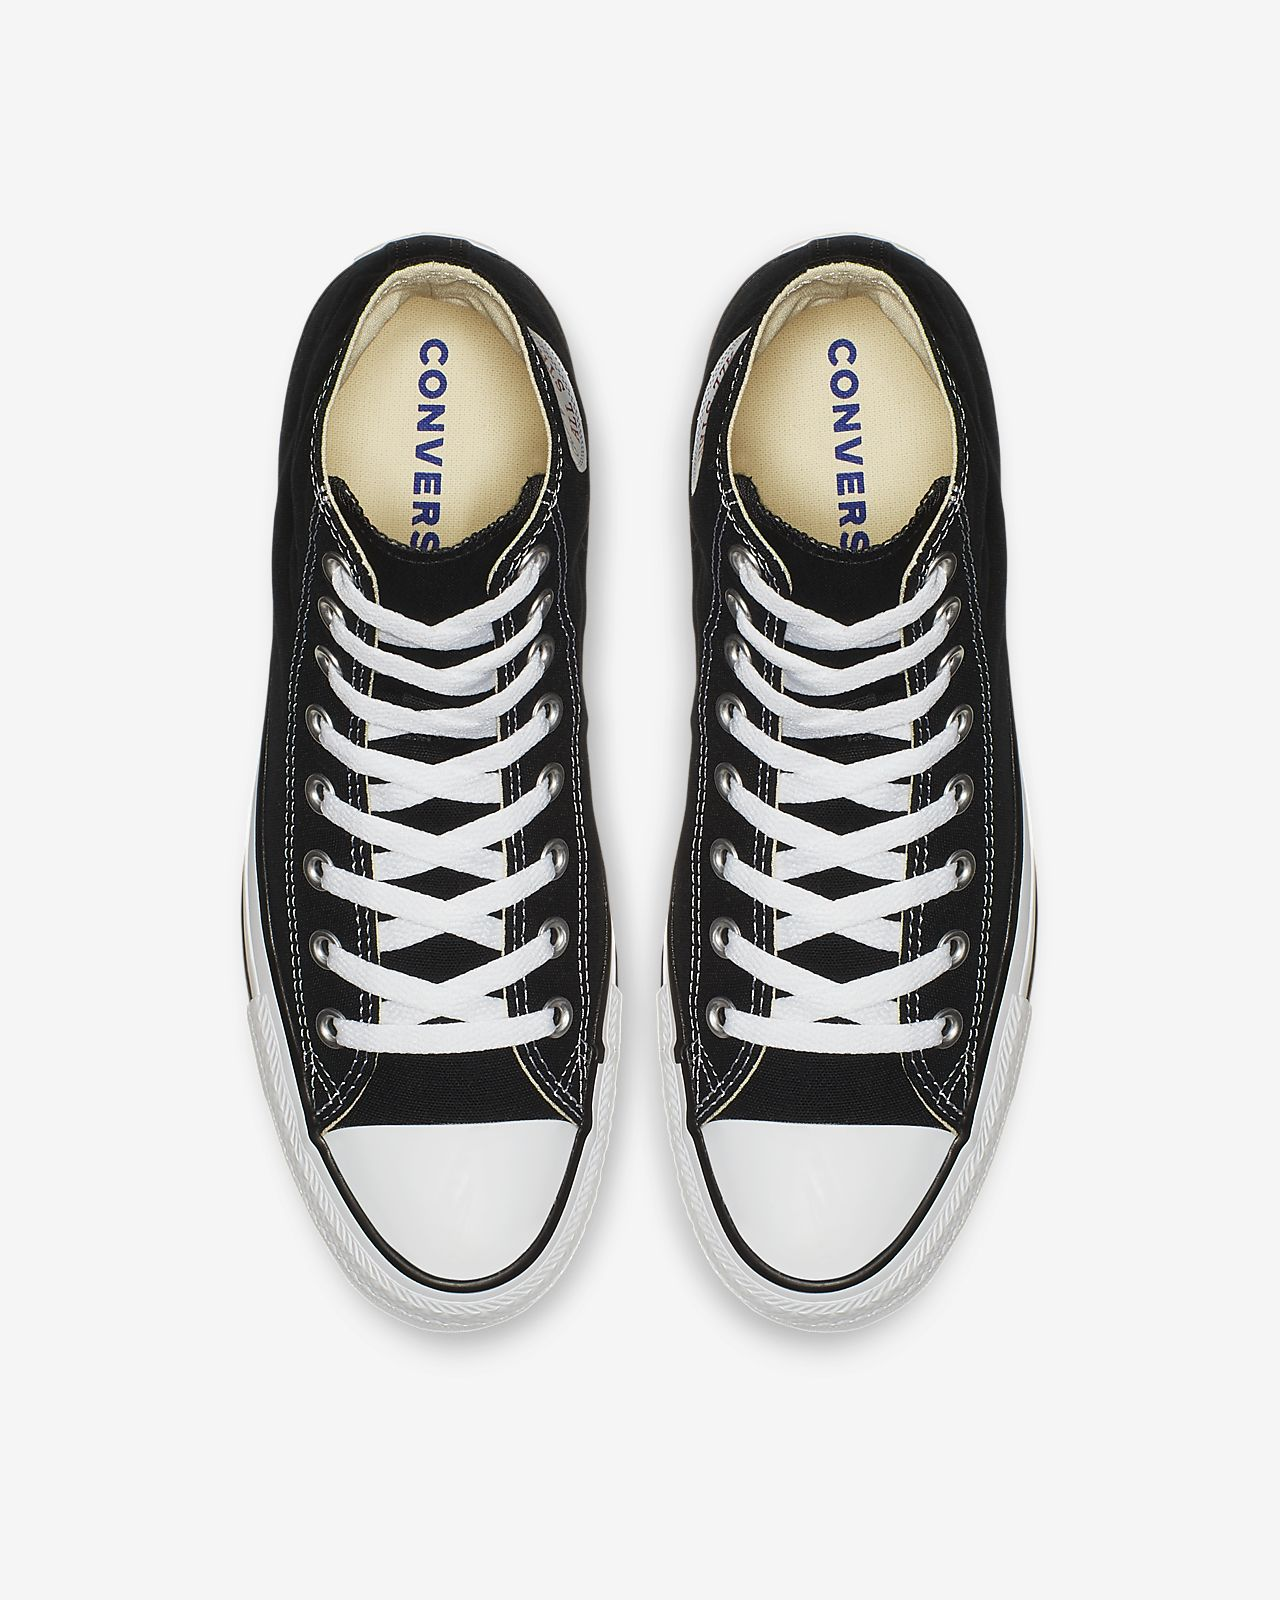 bd739395b1 Converse Chuck Taylor All Star High Top Unisex Shoe. Nike.com